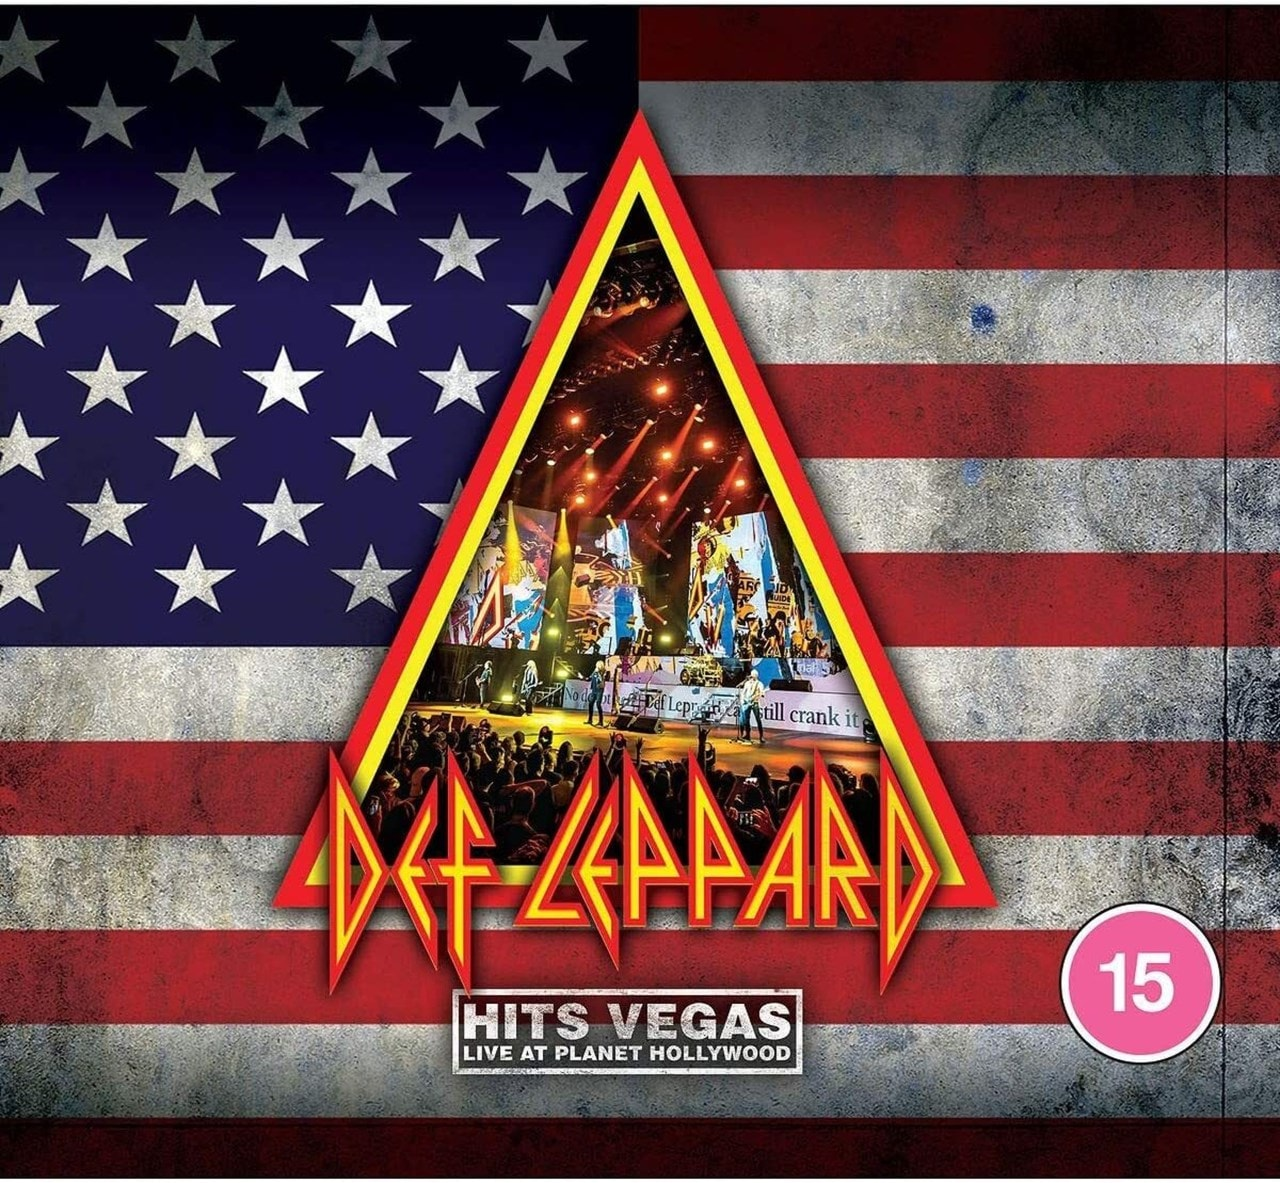 Def Leppard: Hits Vegas - Live at Planet Hollywood - 1